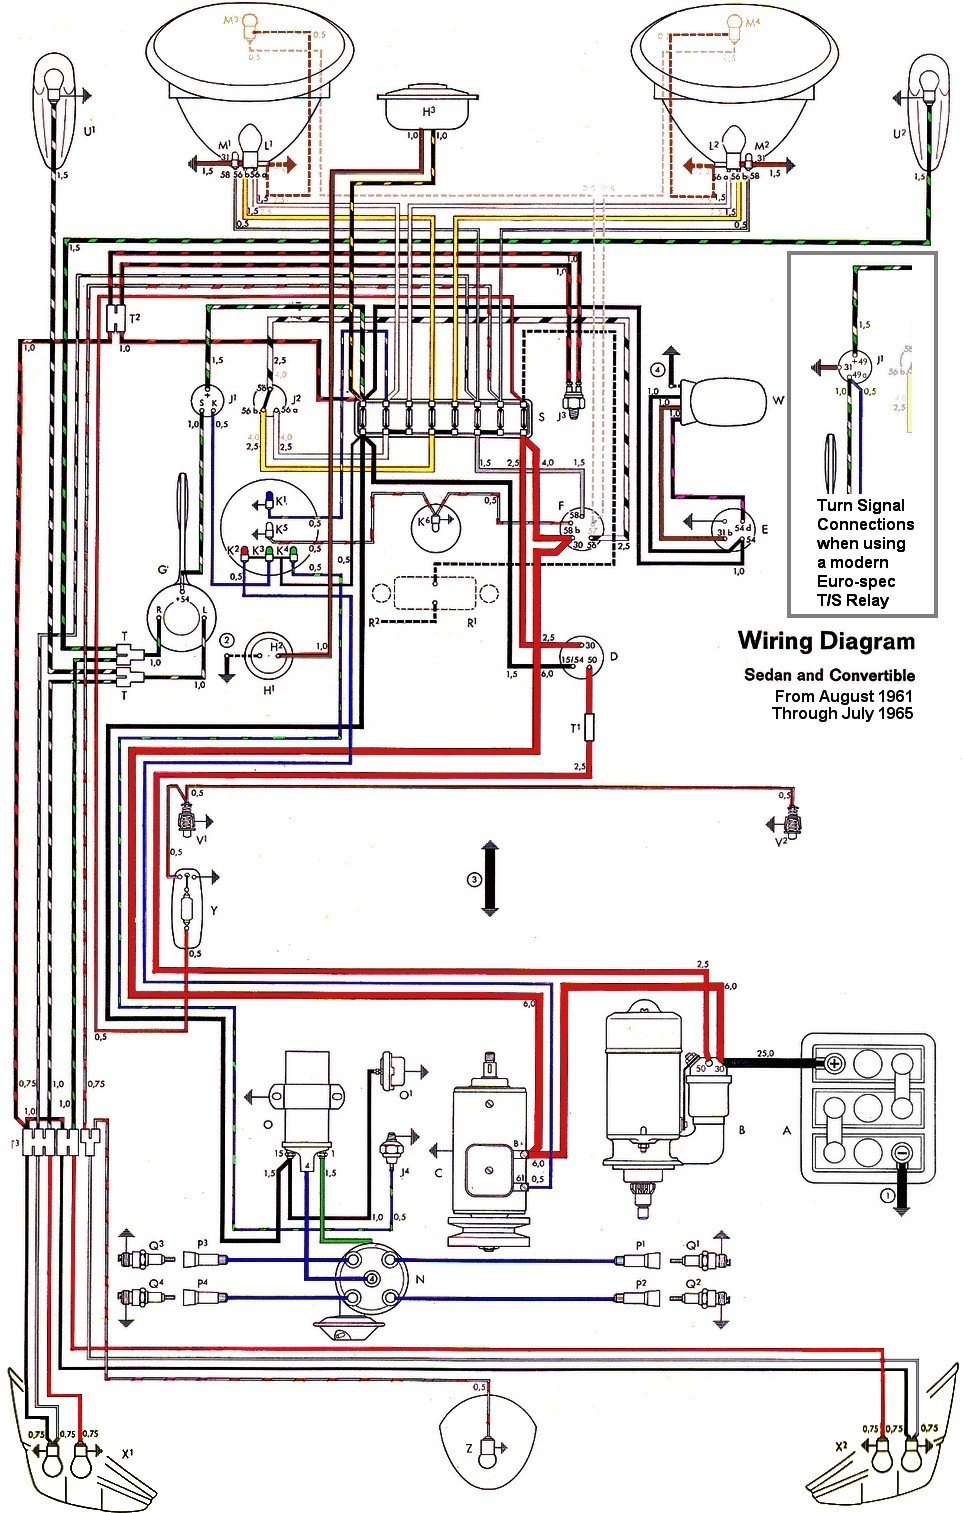 bug_62 65withinset thesamba com type 1 wiring diagrams 1973 vw super beetle wiring diagram at sewacar.co